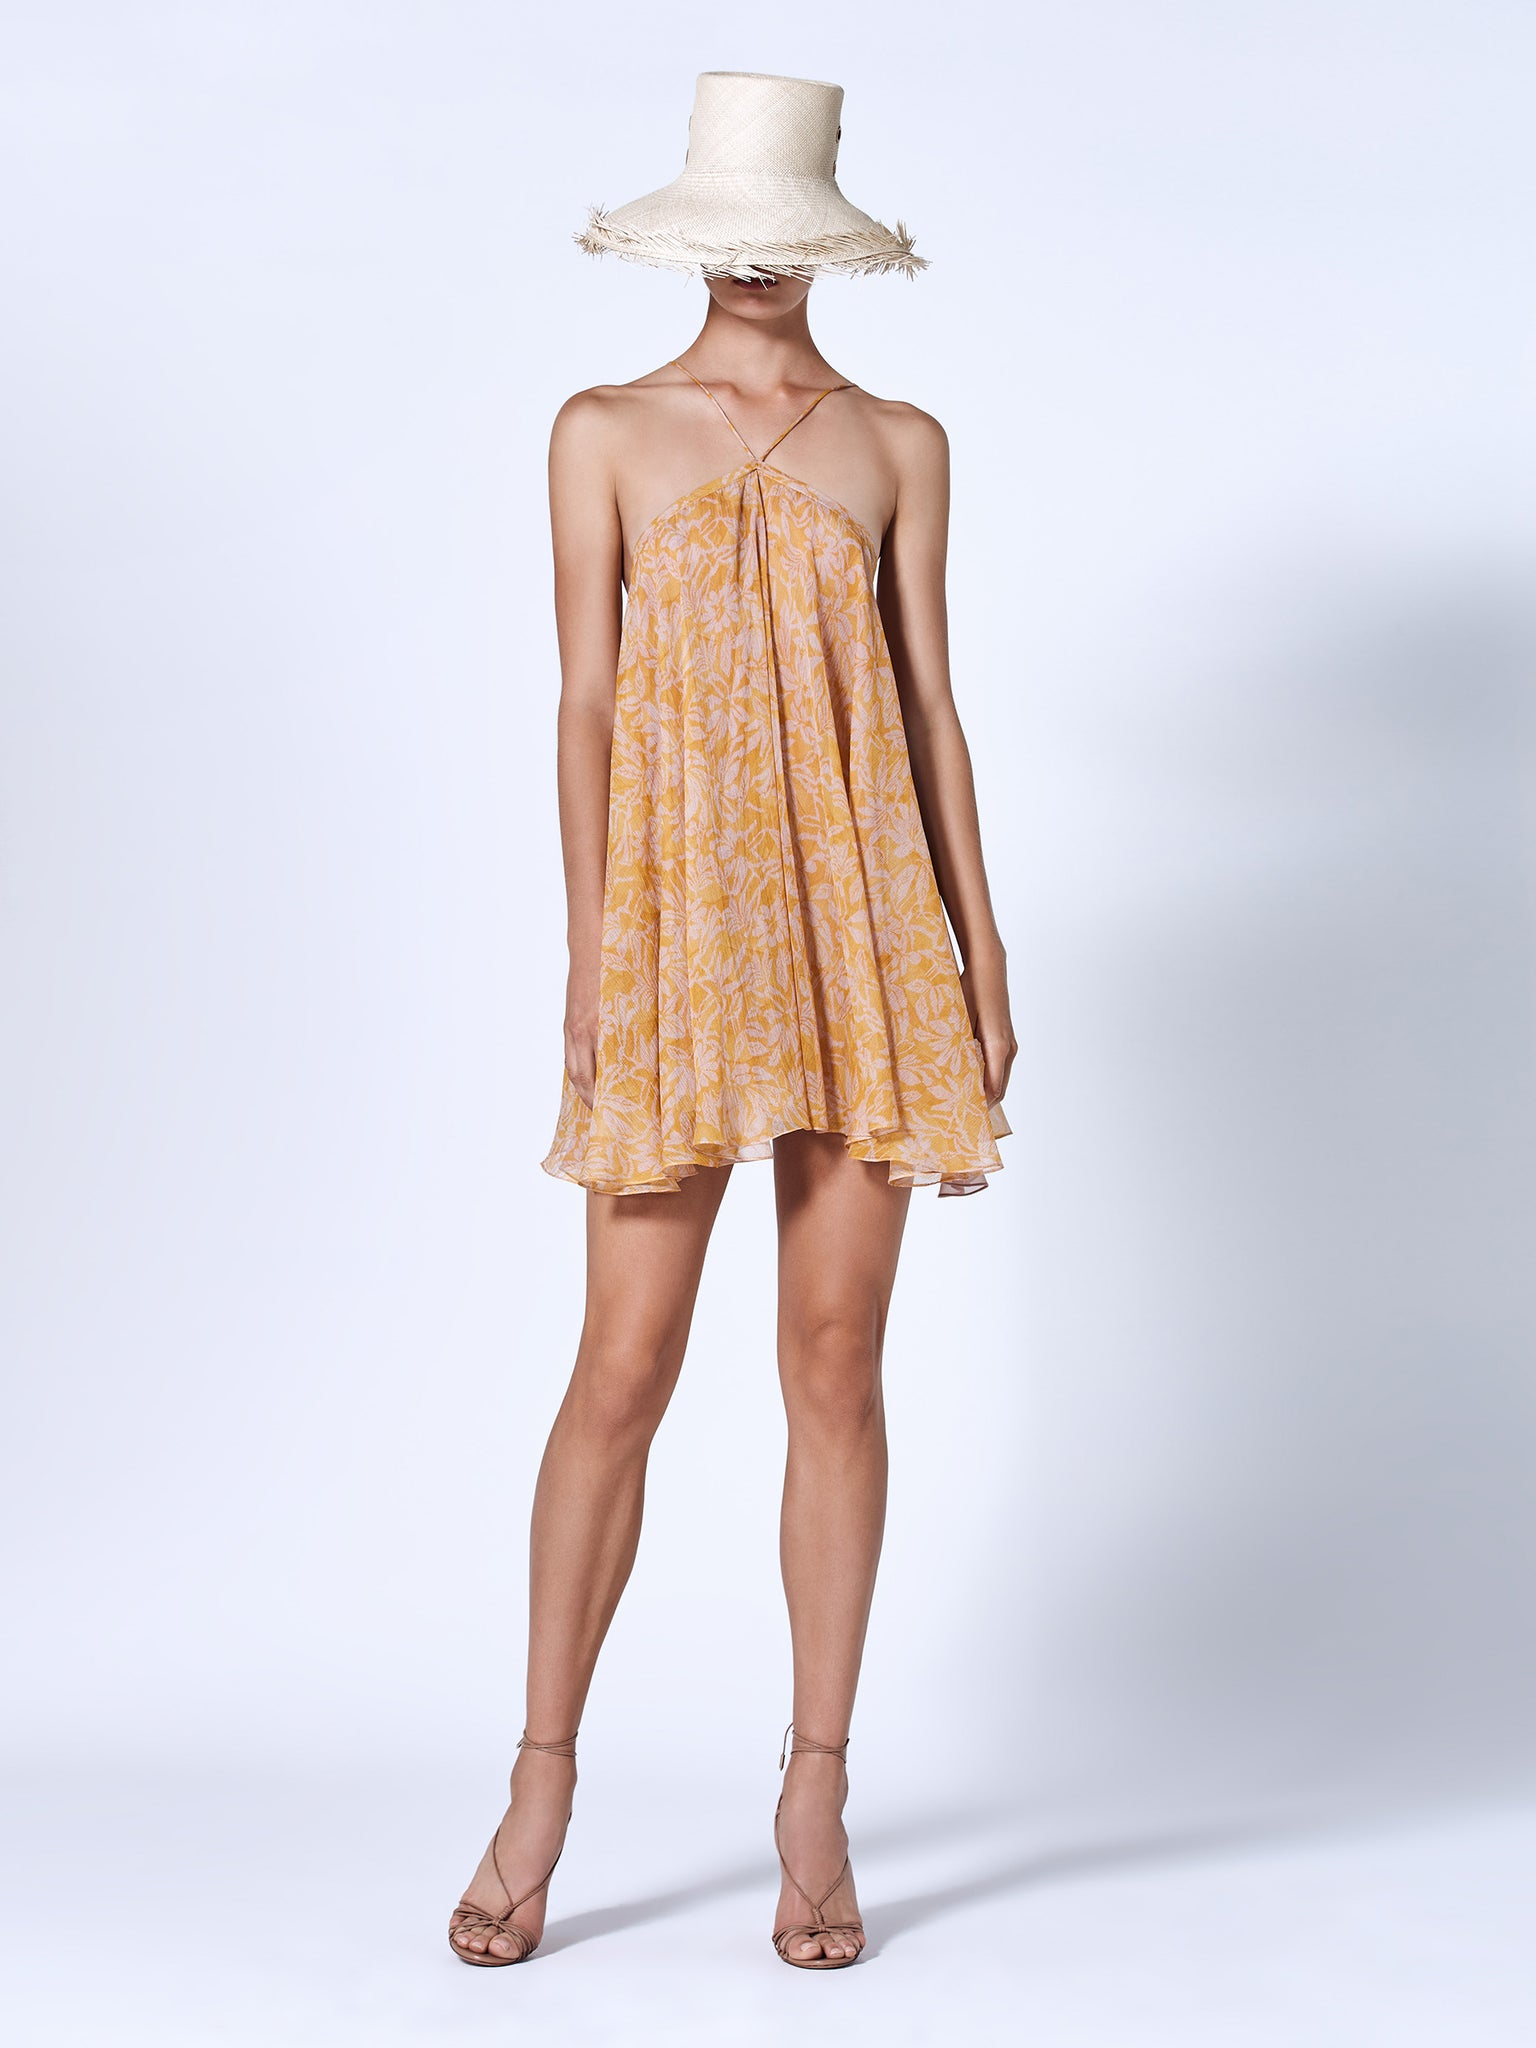 Alexis Amnia swing mini dress in orange and lilac printed chiffon fabric featuring a halter neckline